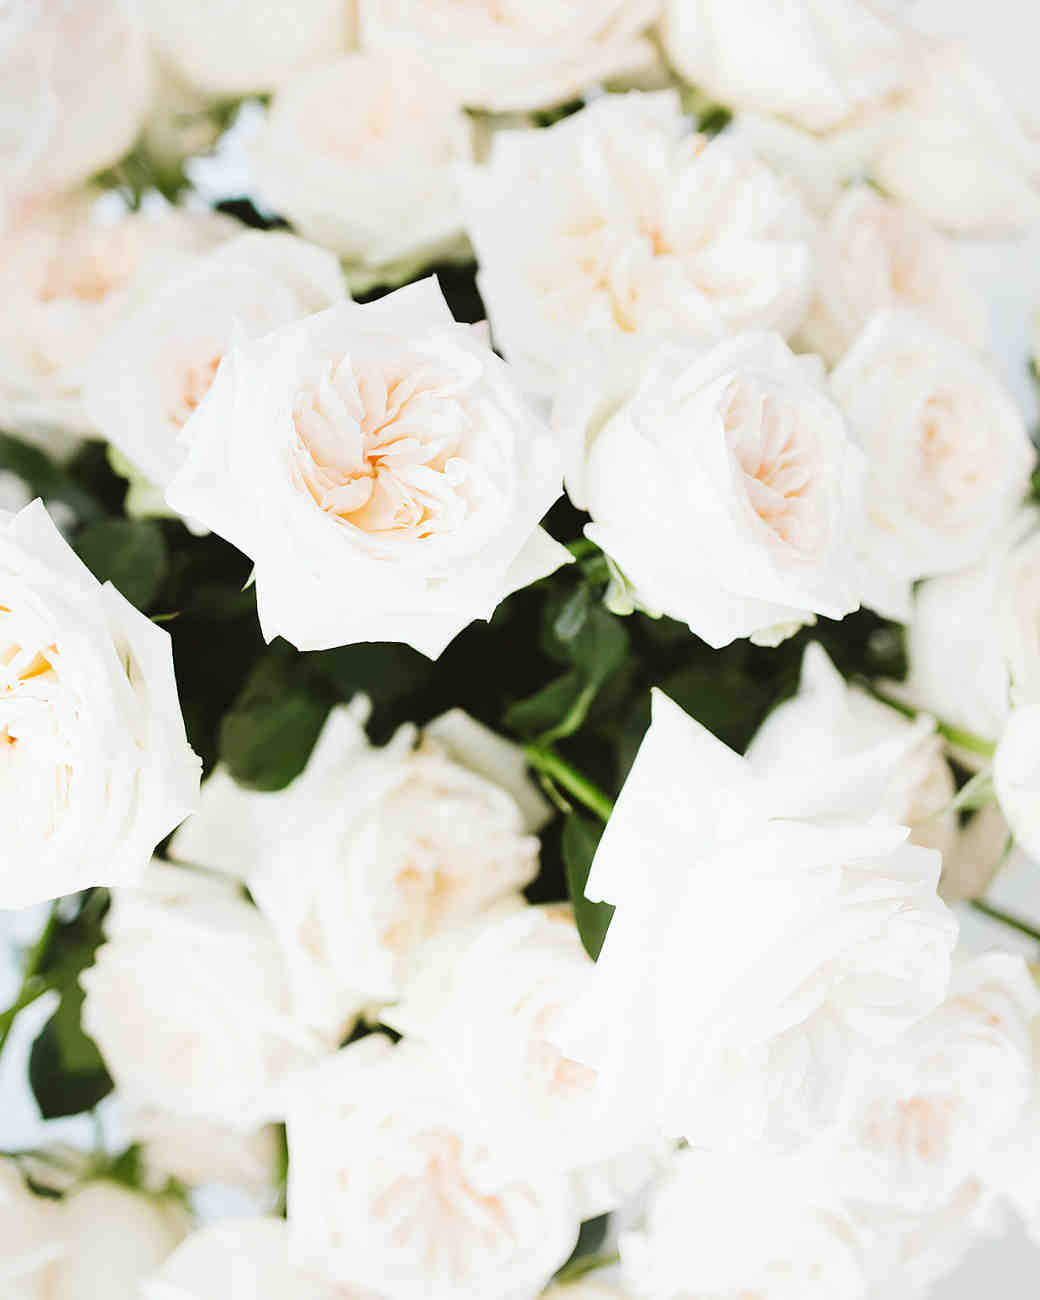 Romantic Garden Wedding Ideas In Bloom: The 5 Most Romantic Wedding Flowers